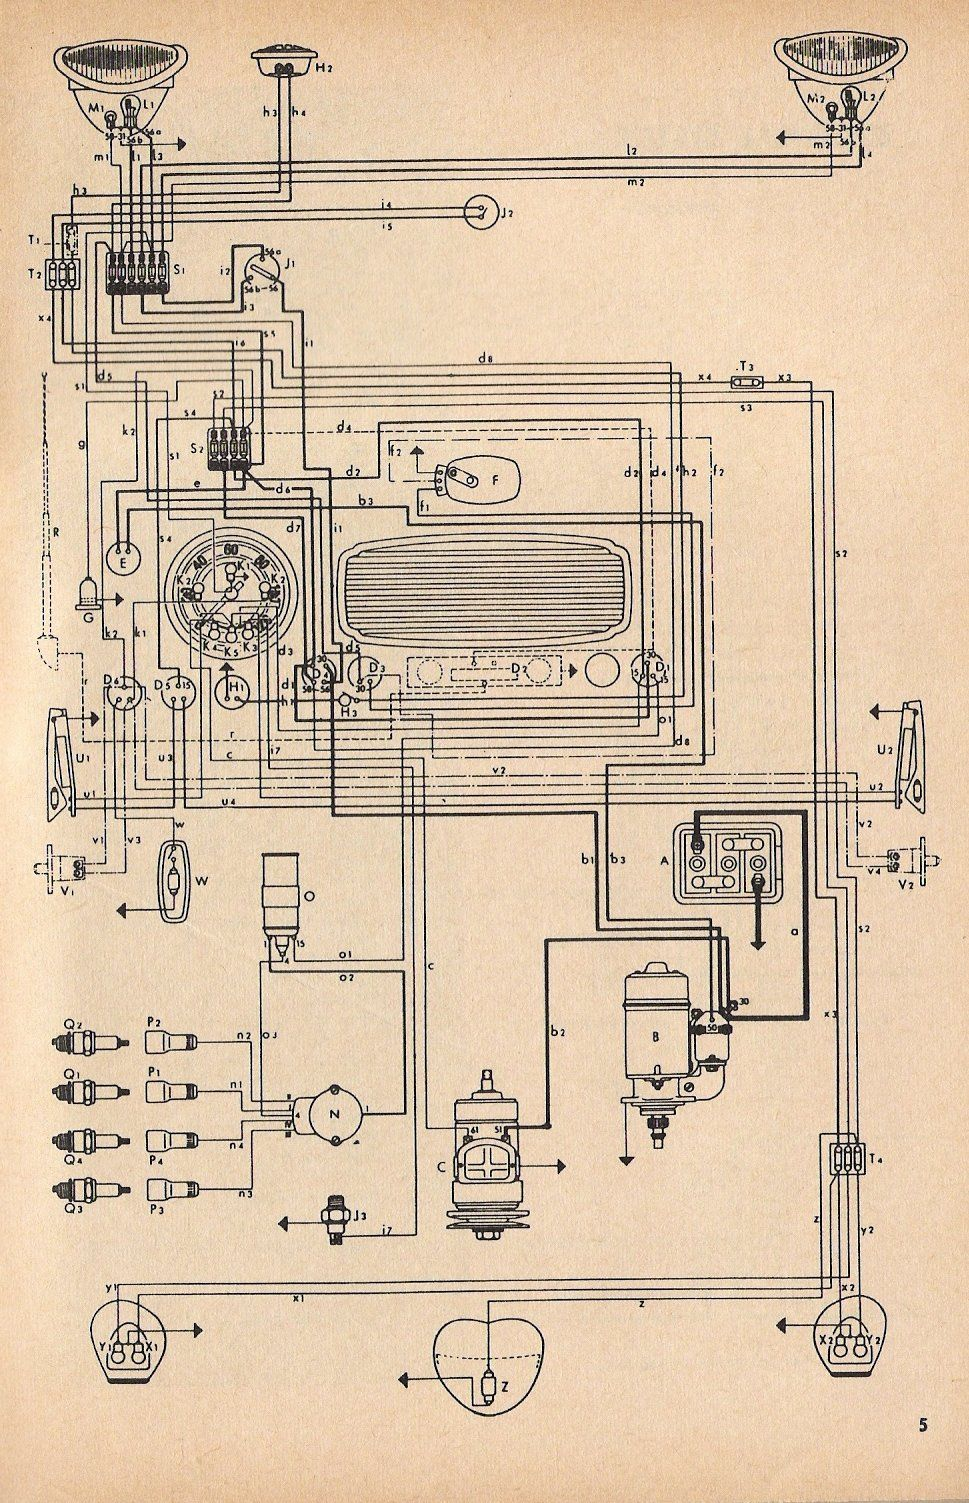 73aa9ad606b8bf00f62fd44f769ec35c electrical wiring diagrams beetle 1971 electrical wiring Volkswagen Type 2 Wiring Harness at crackthecode.co